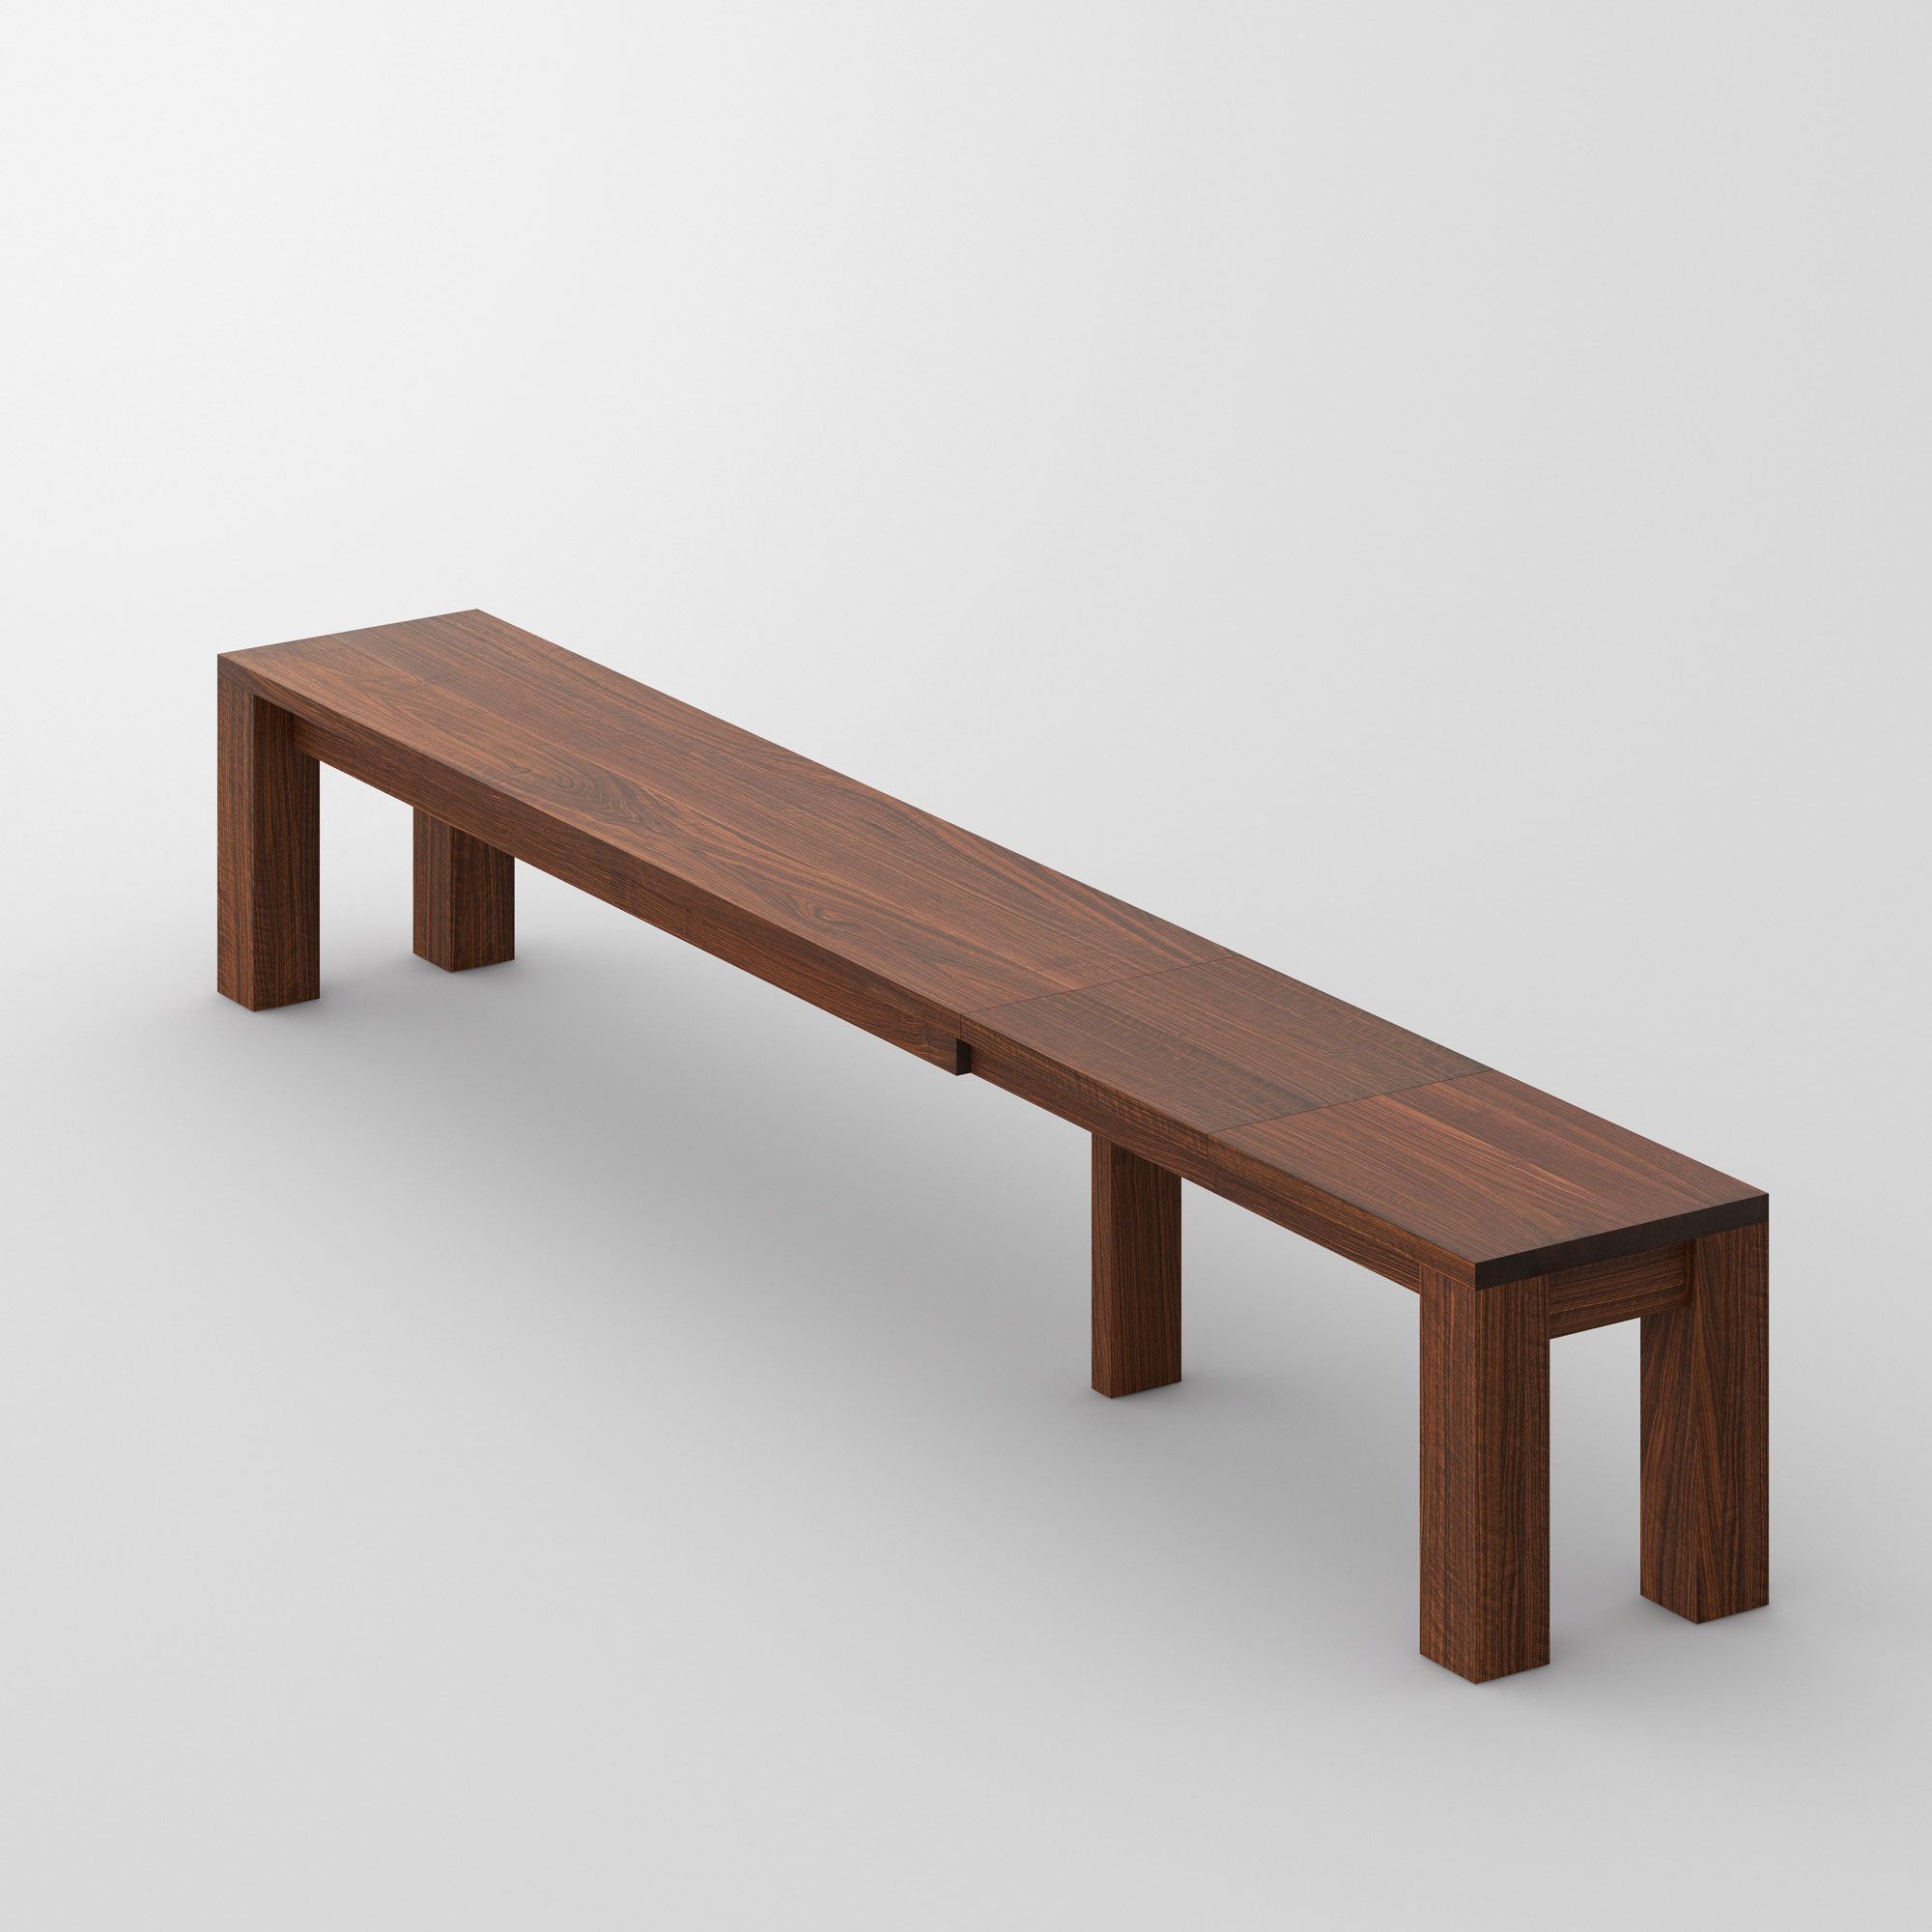 Extendable Bench CUBUS EP 3 cam3 custom made in solid wood by vitamin design